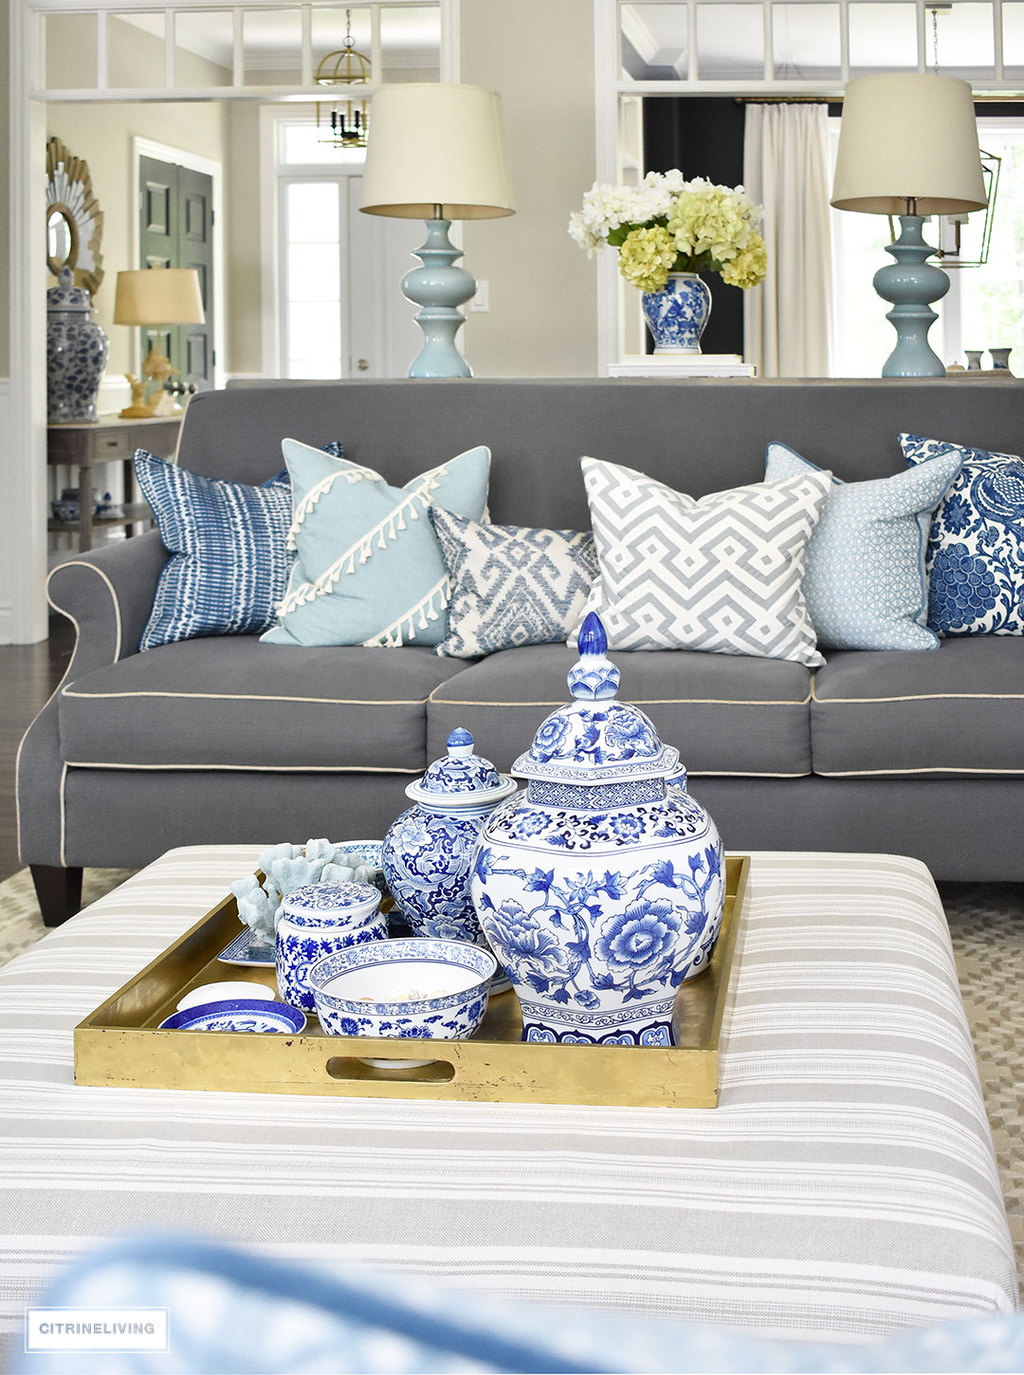 3 ways to style your coffee table or ottoman style your coffee table with a clustered grouping of blue and white ginger jars and accessories geotapseo Images